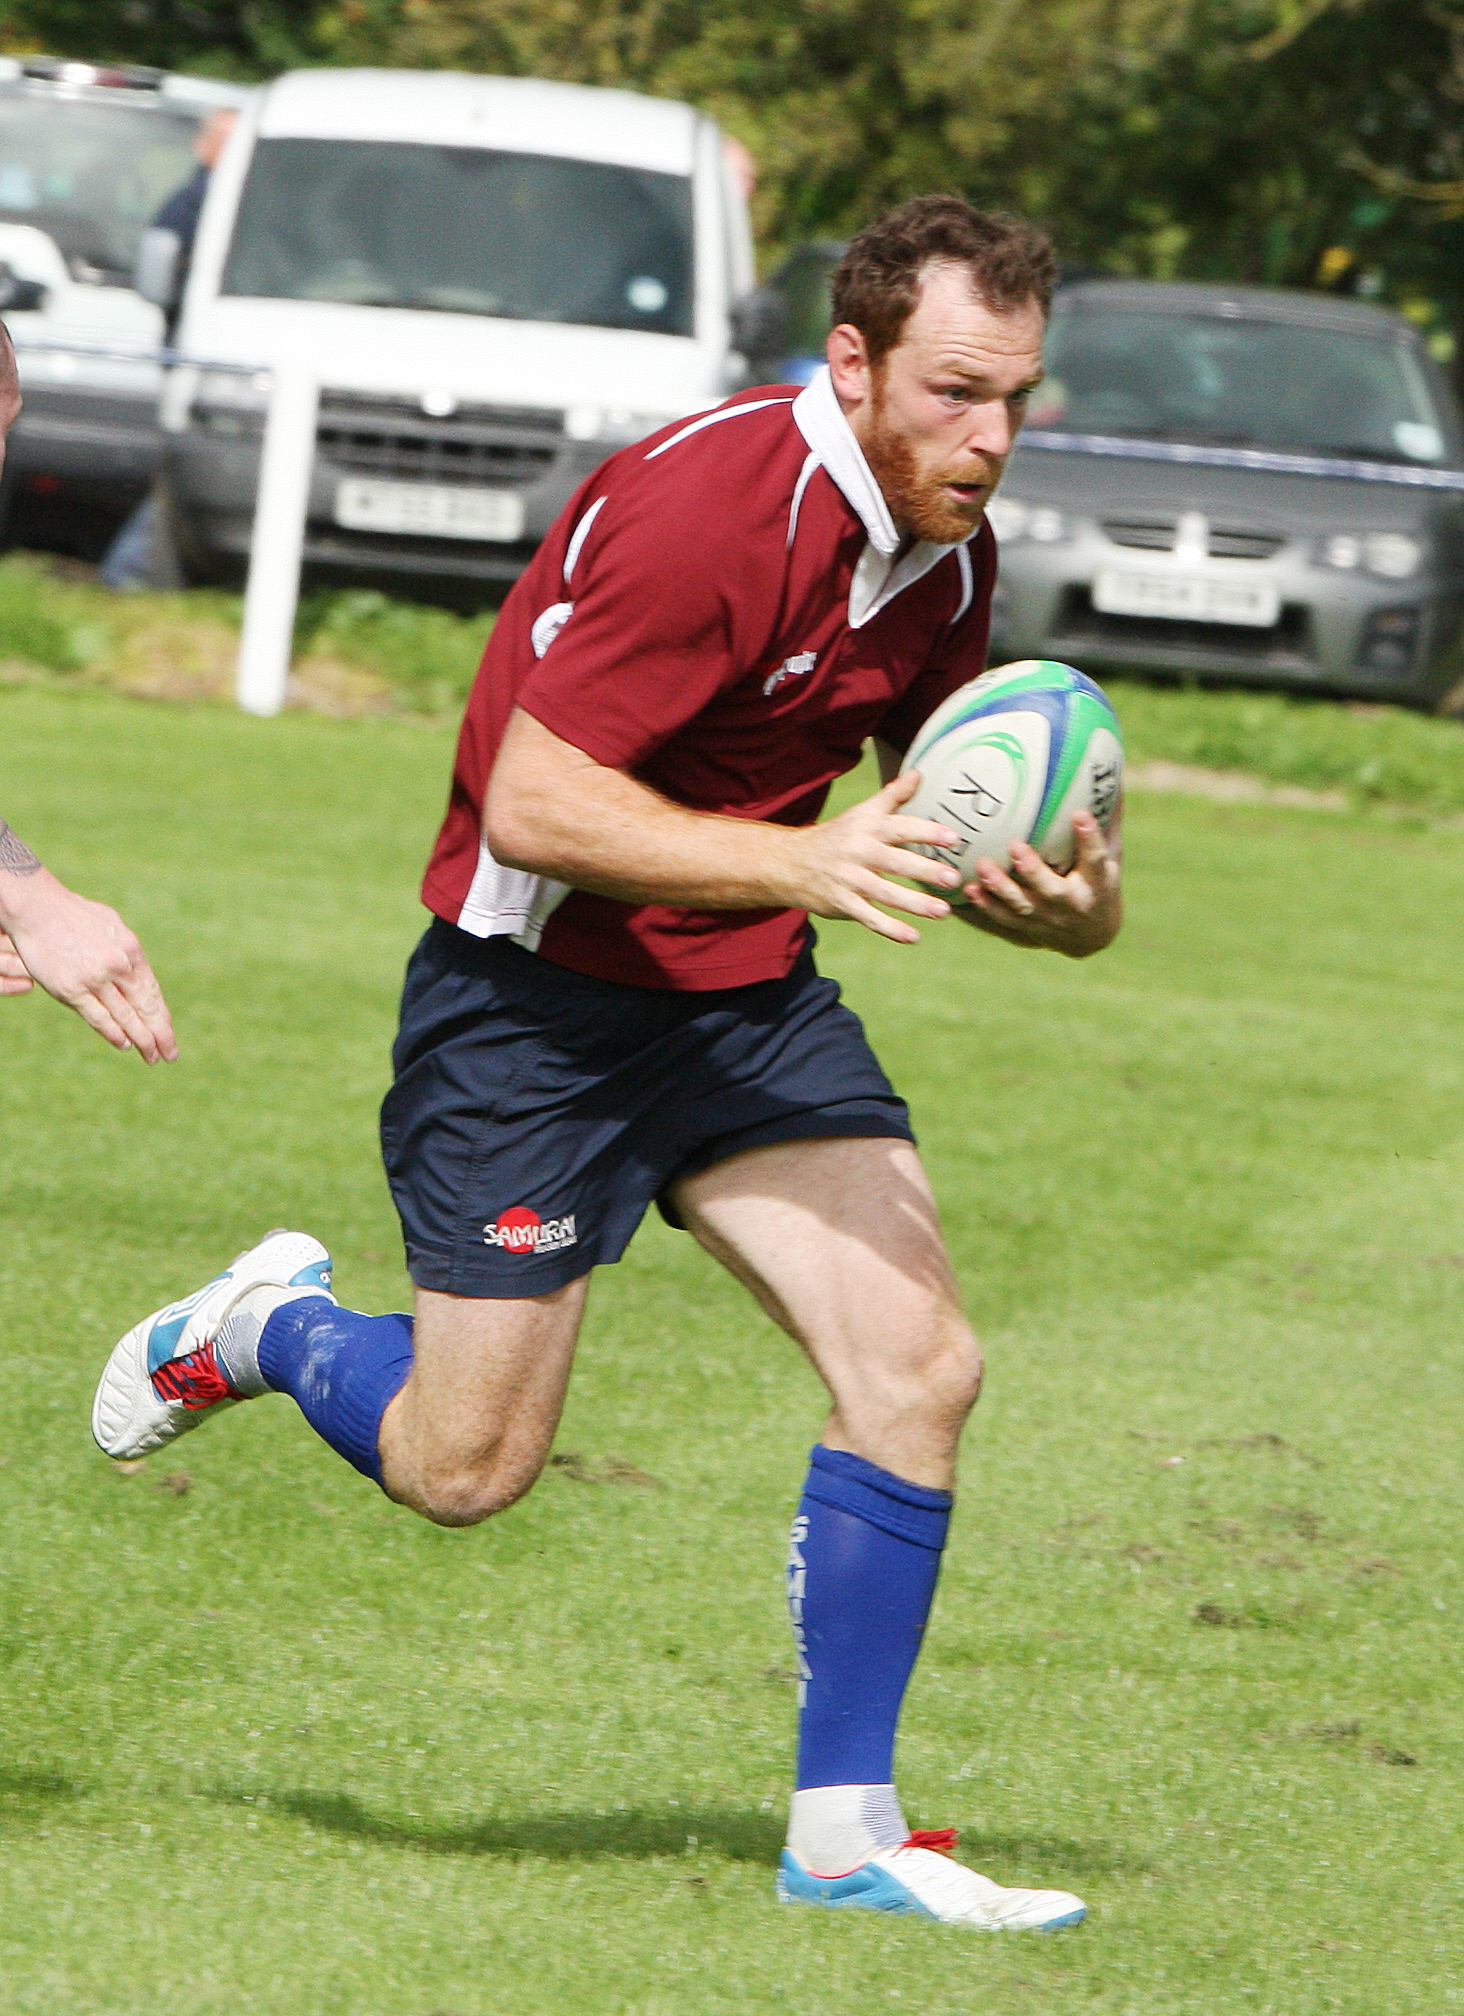 Jonathan Richards scored a fine try